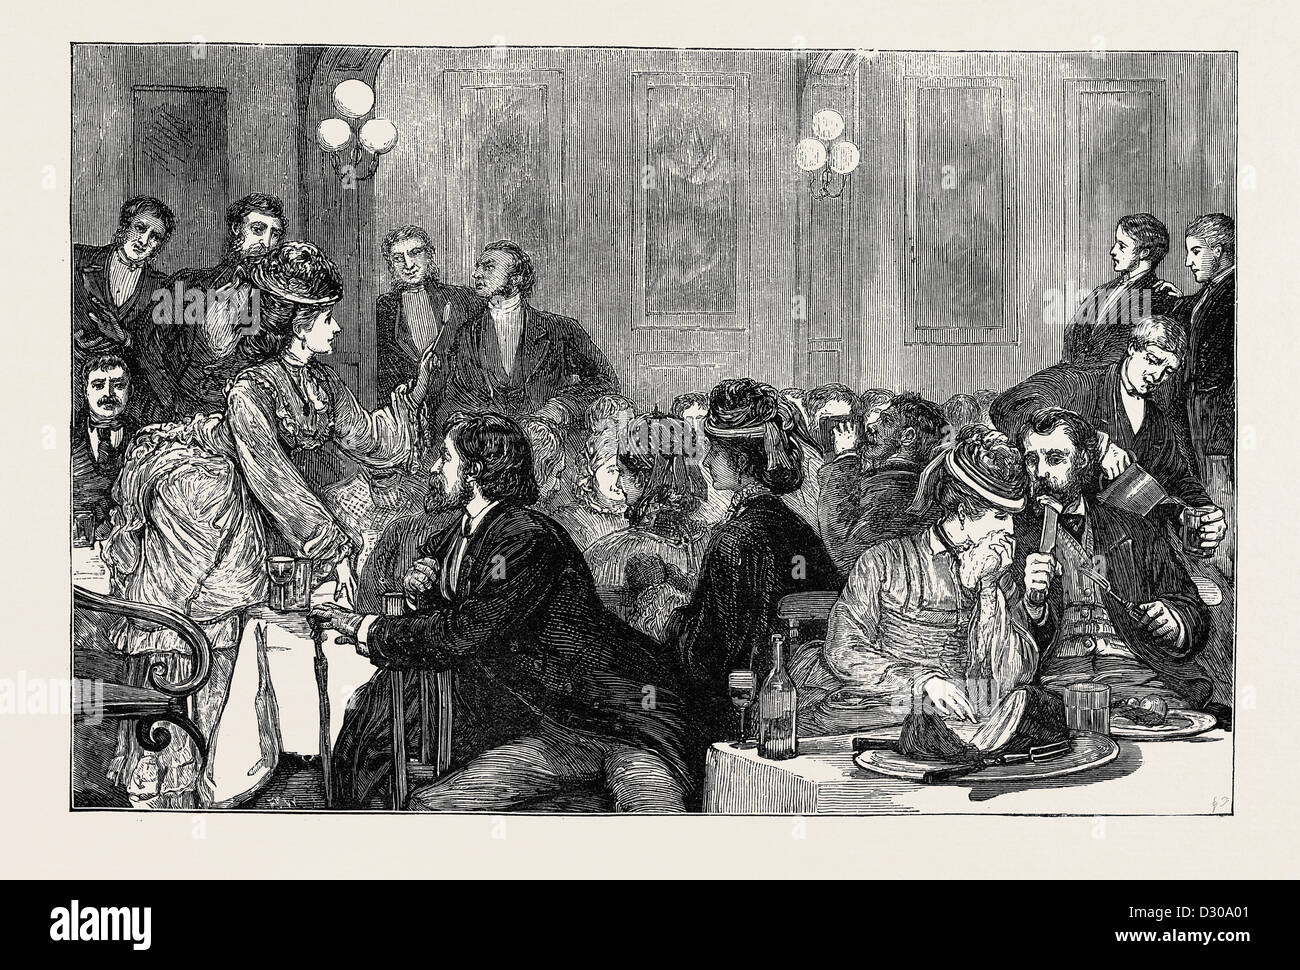 AN AUSTRALIAN-MEAT SUPPER AT NEWCASTLE-ON-TYNE - Stock Image